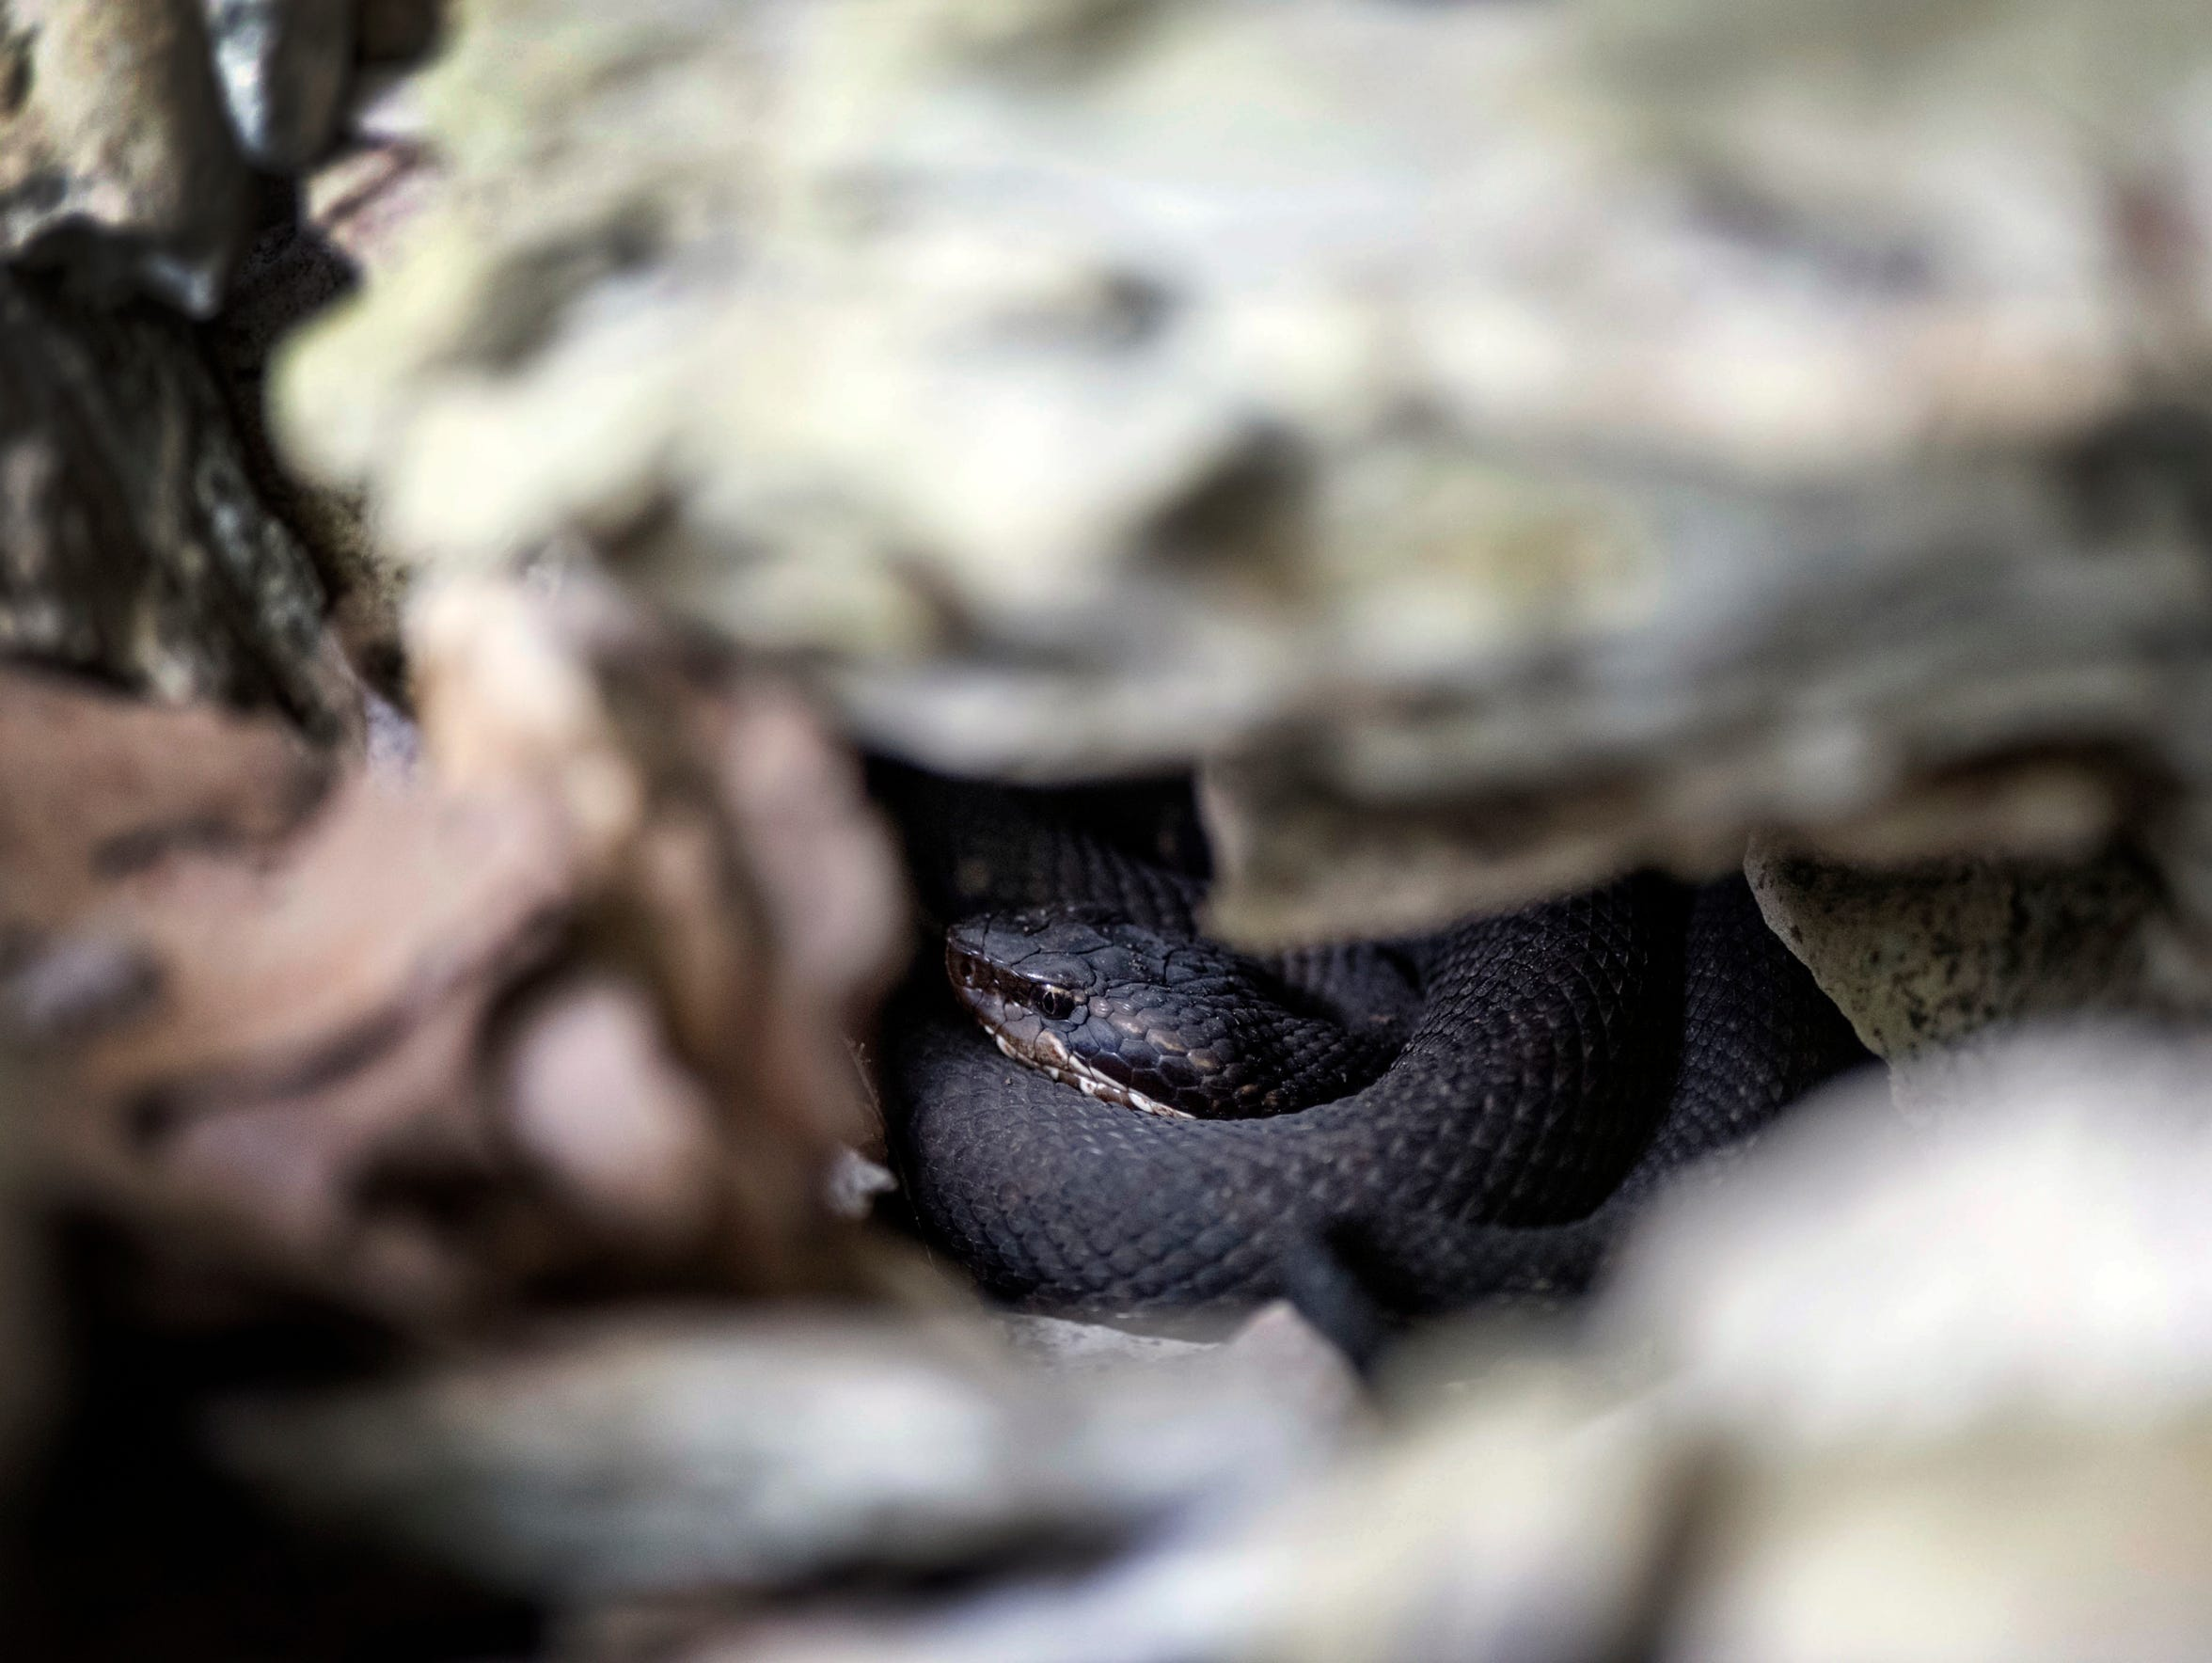 A Cottonmouth snake is curled up in a den underneath